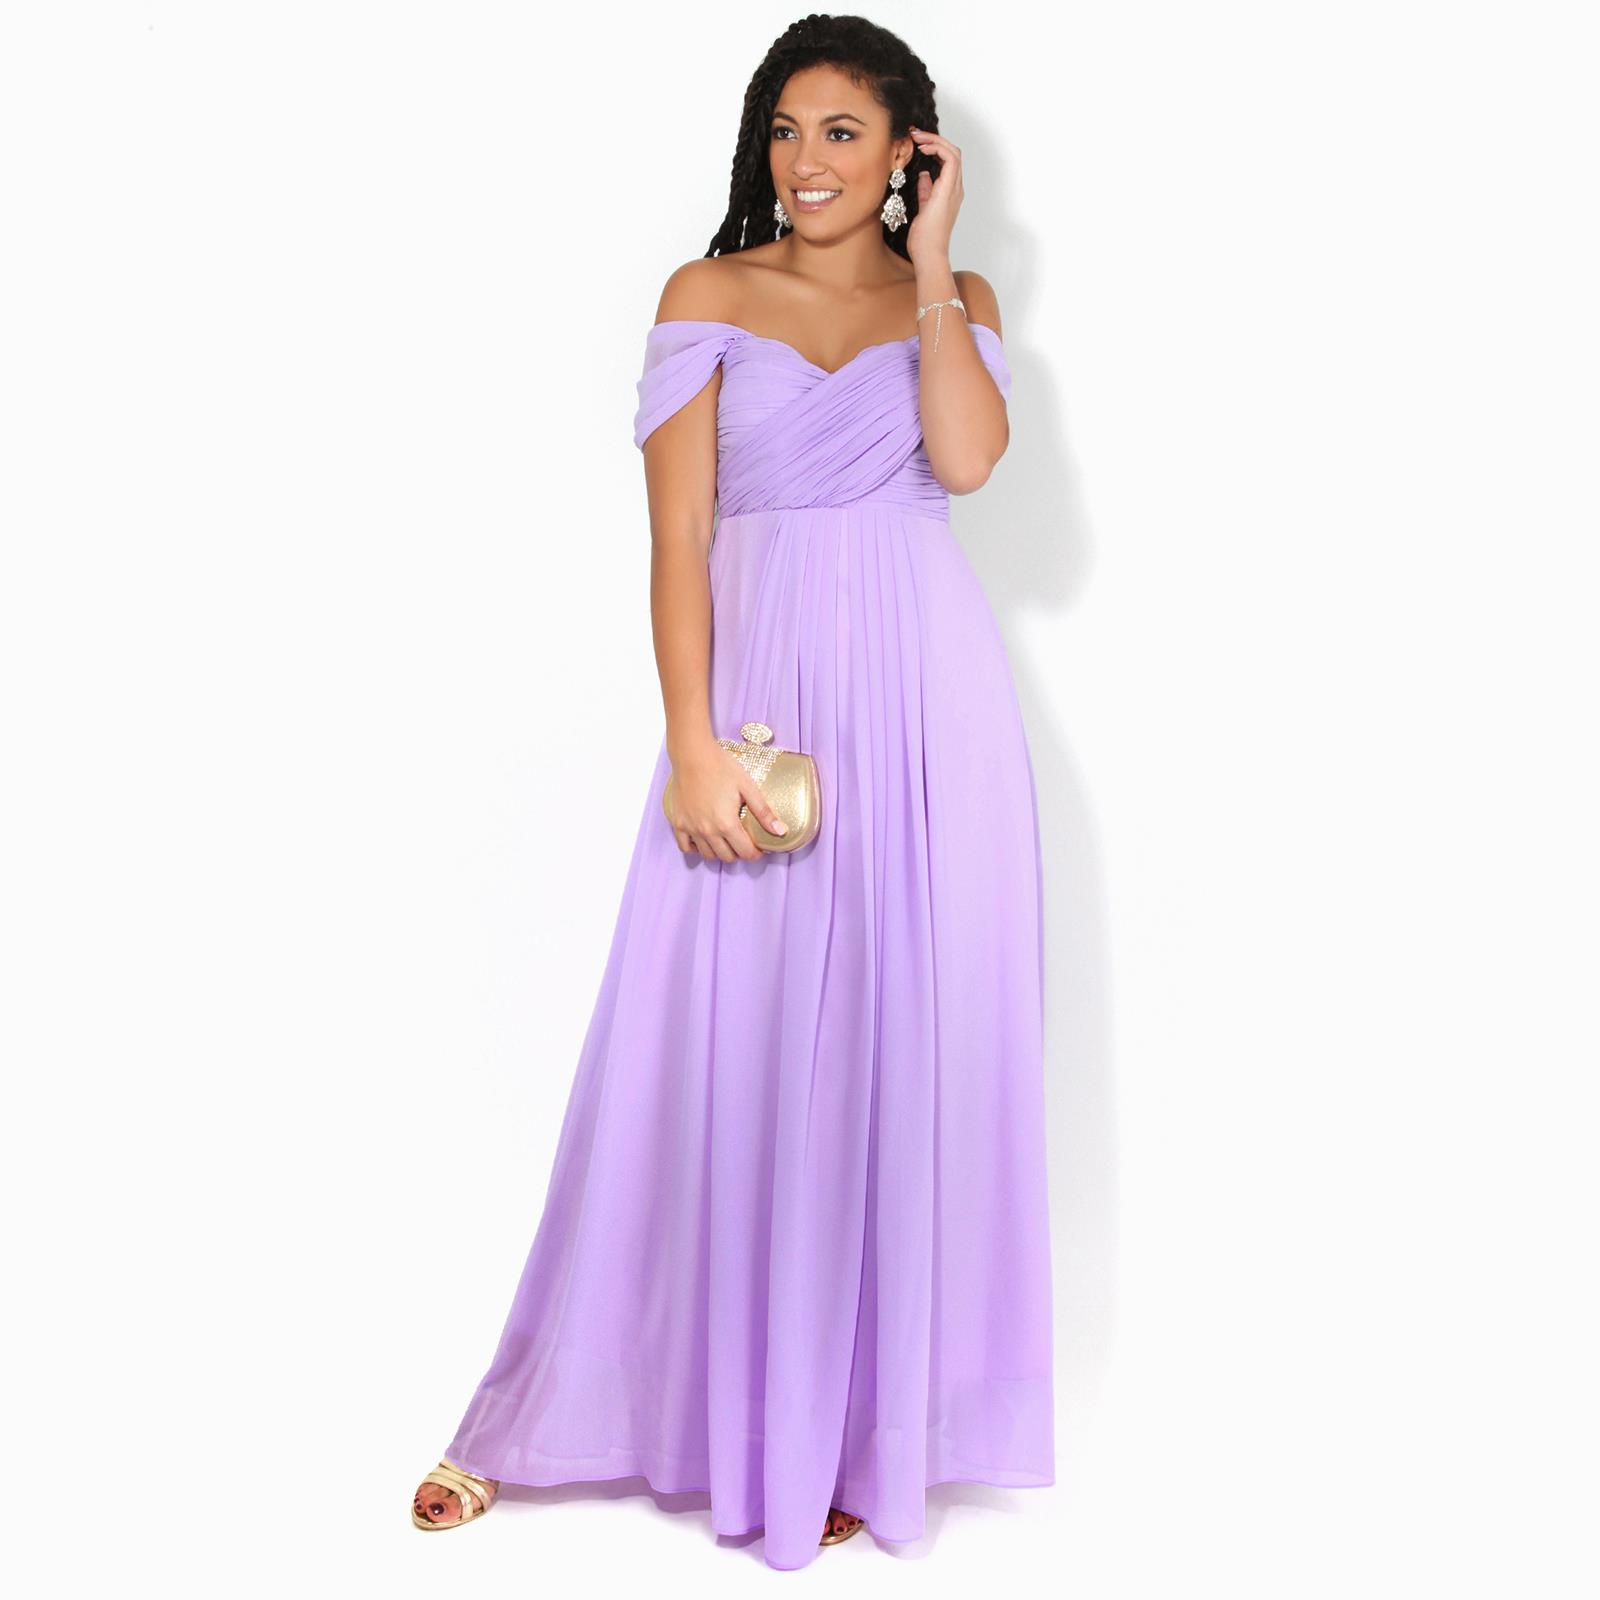 Womens-Formal-Evening-Wedding-Maxi-Prom-Dress-Long-On-Off-Shoulder-Ball-Gown thumbnail 30